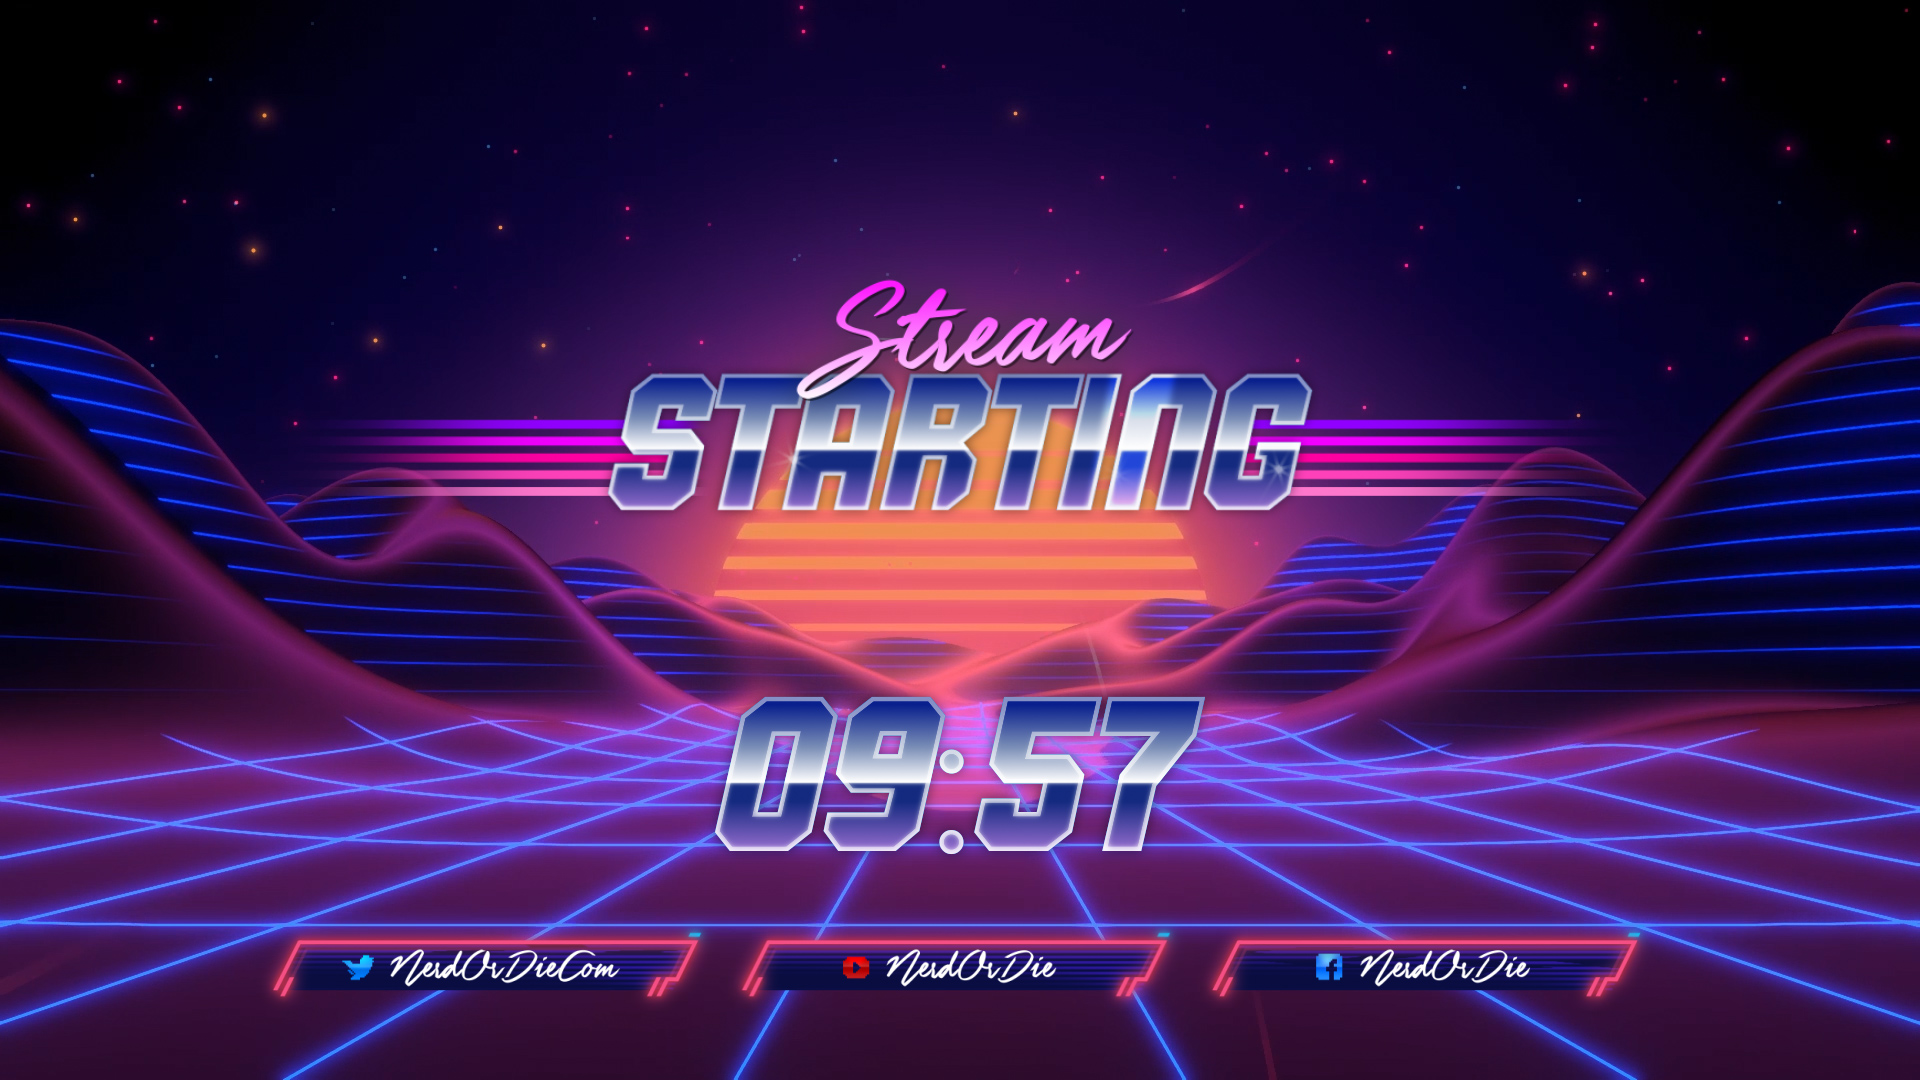 Synthwave - Stream Package